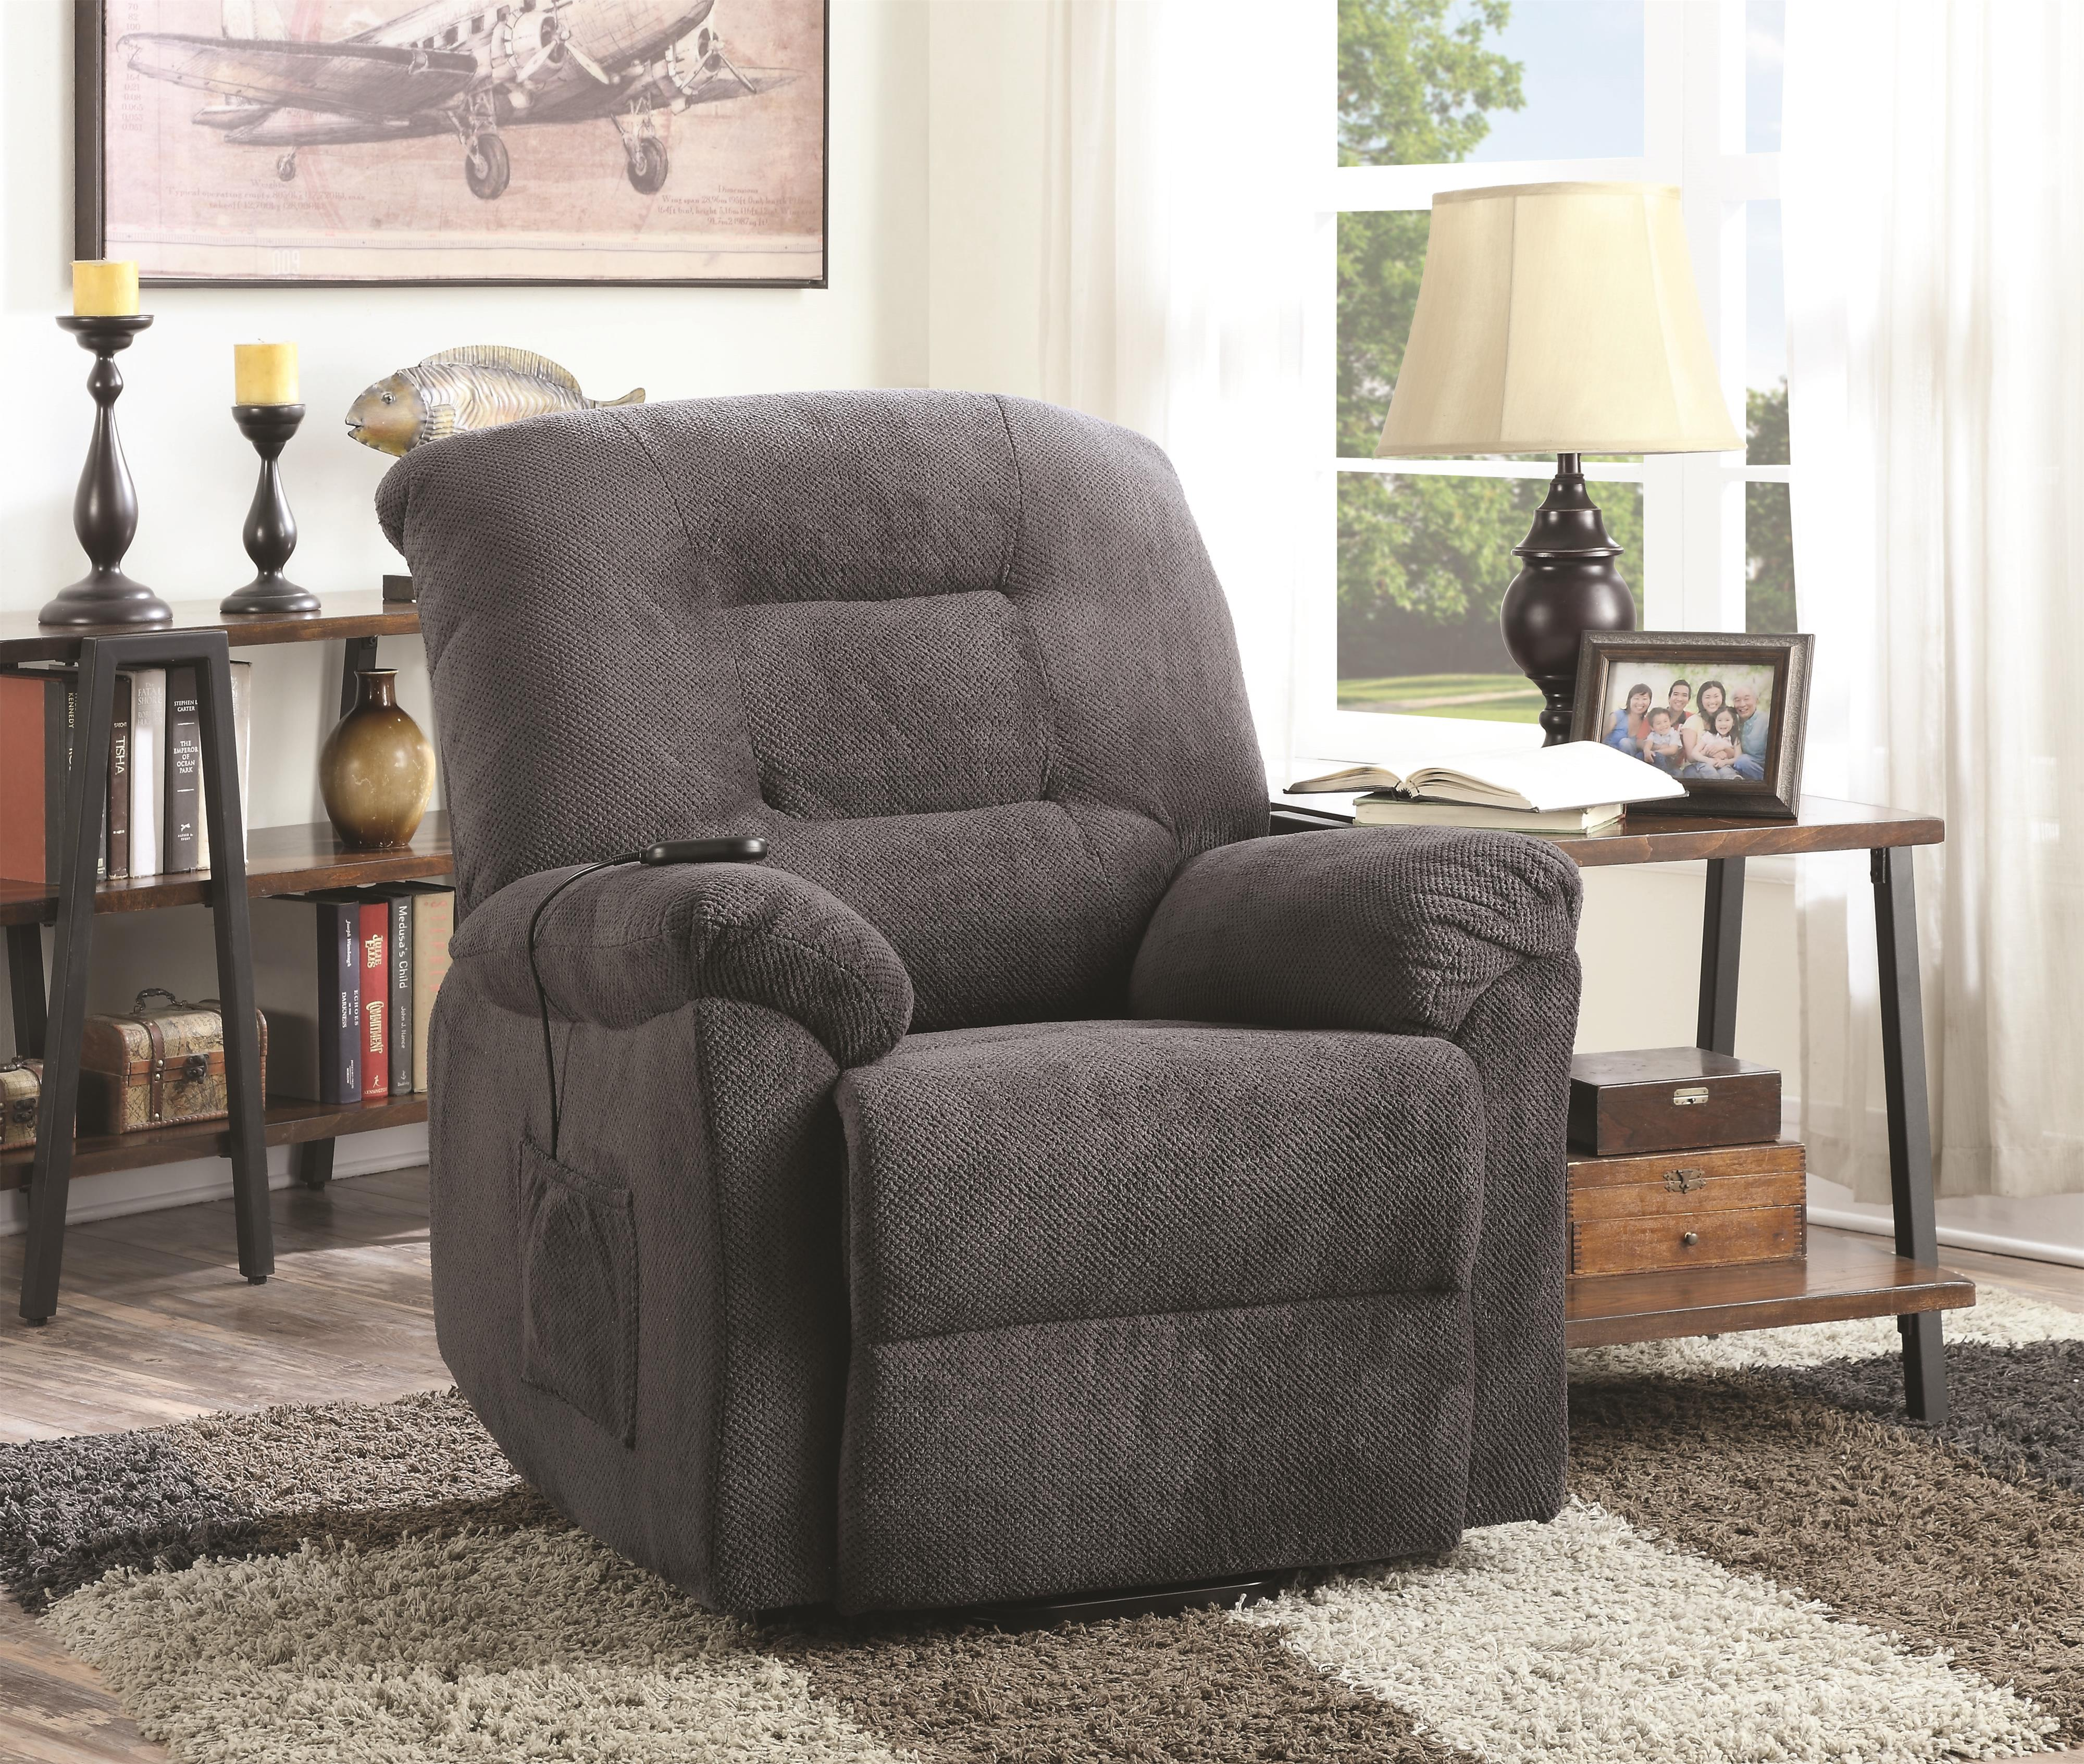 Recliners Power Lift Recliner by Coaster at Value City Furniture